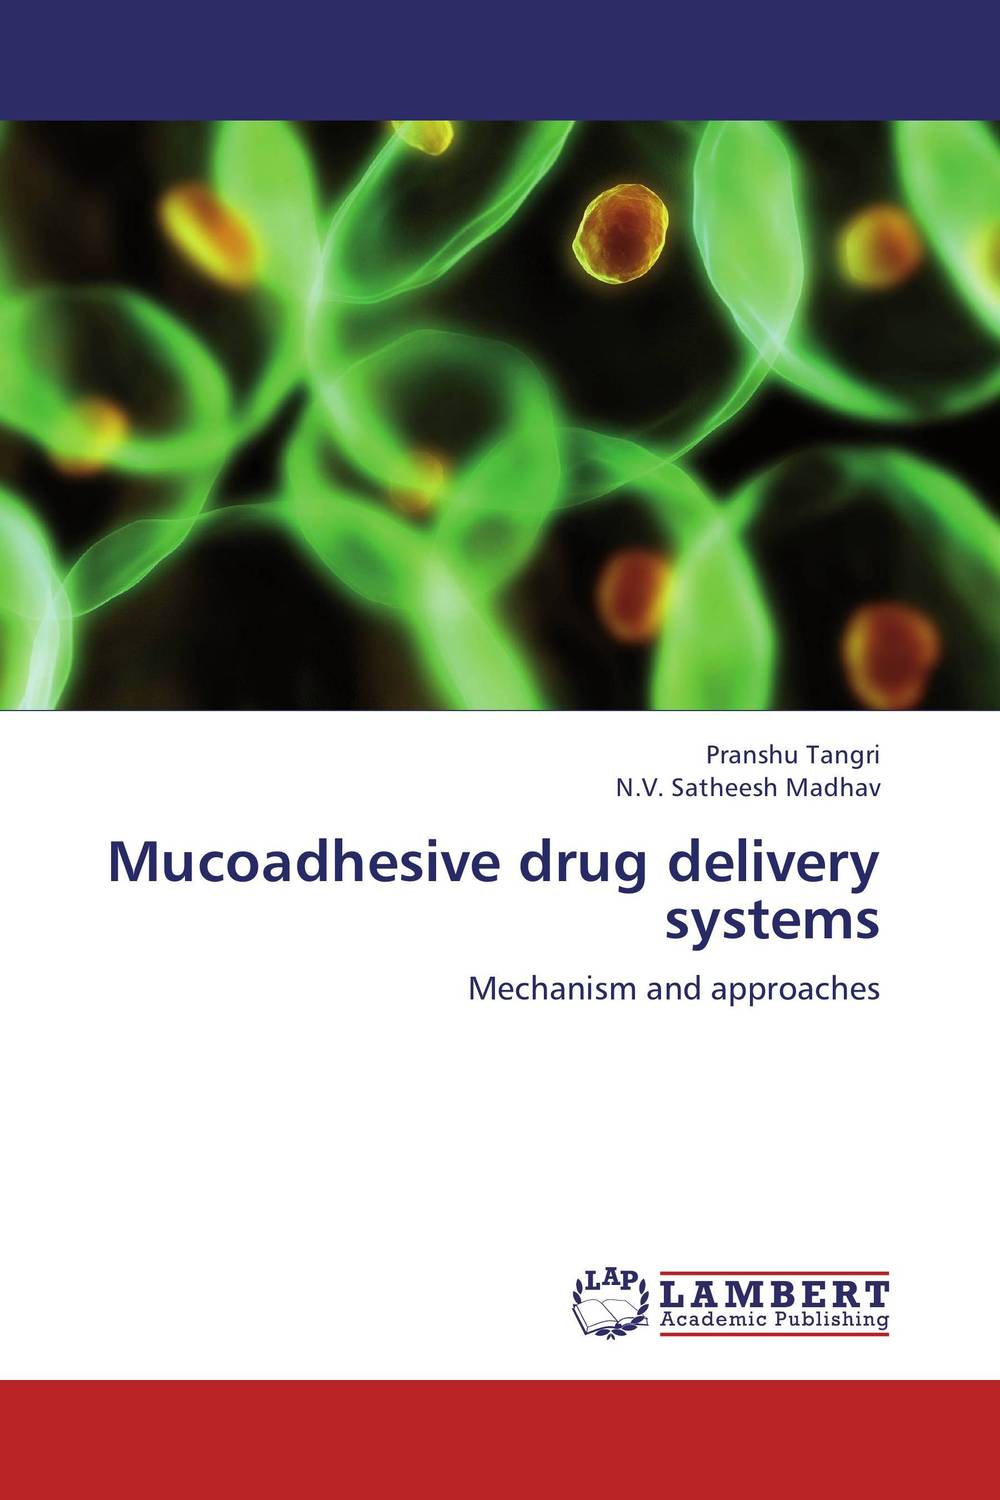 Mucoadhesive drug delivery systems shubhini saraf a k srivastava and gyanendra singh niosome based delivery of an antitubercular drug